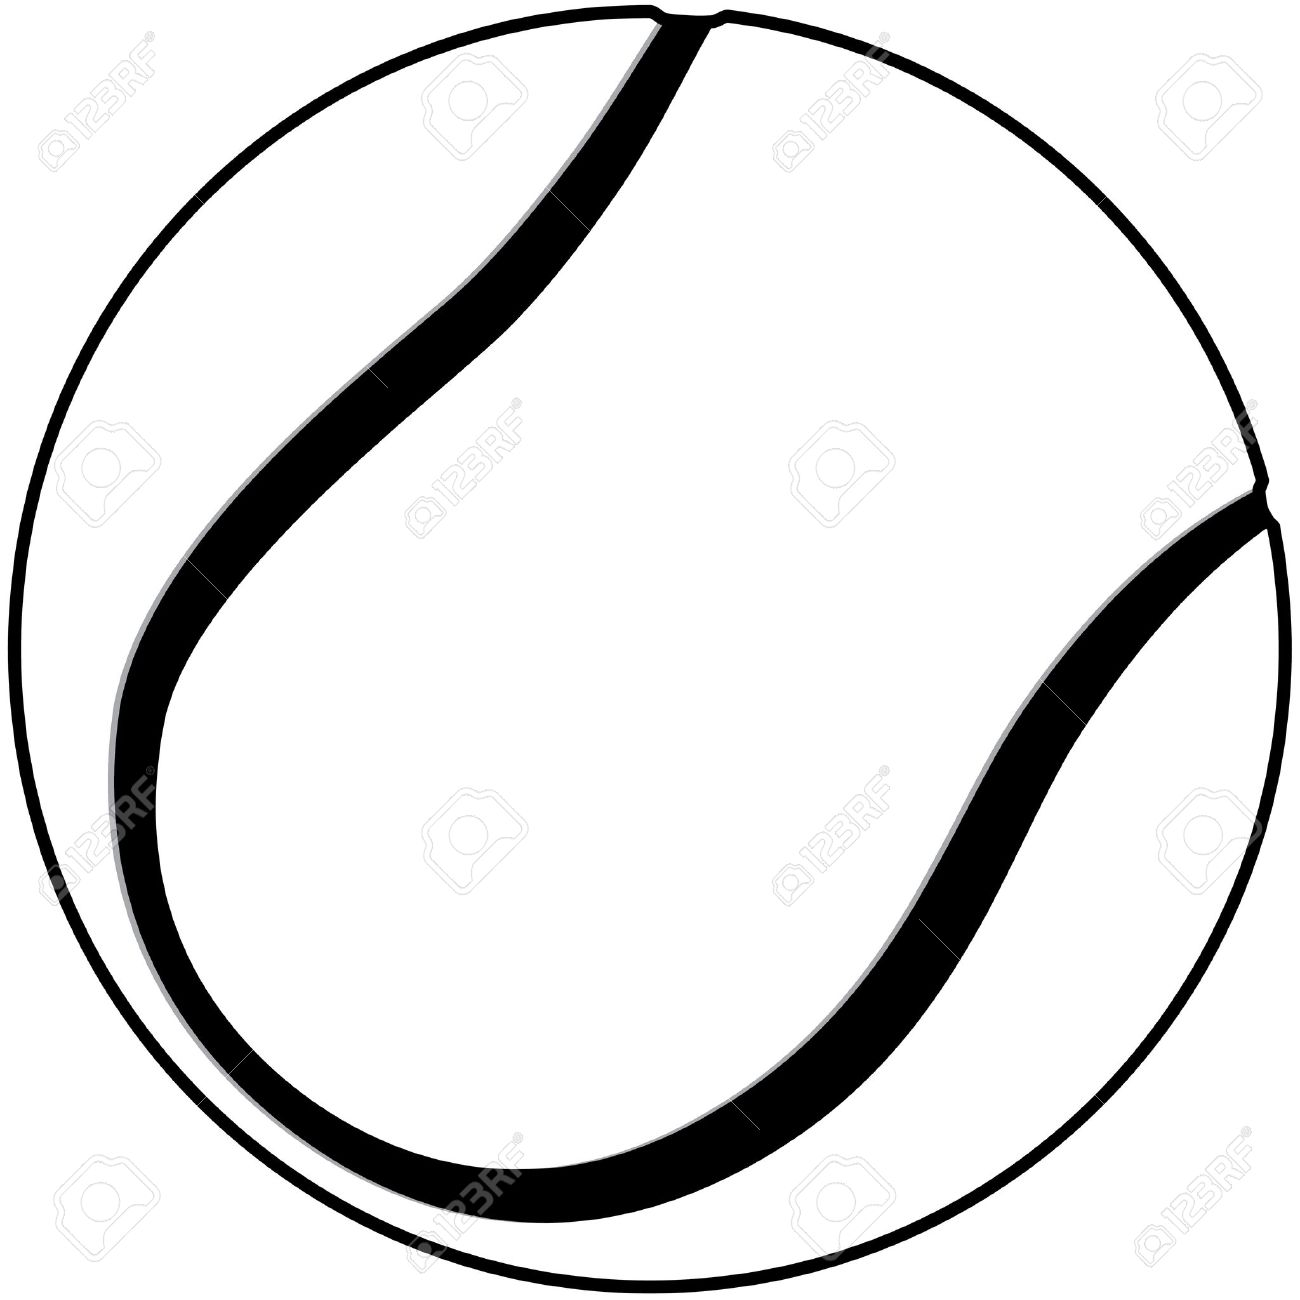 1300x1300 Illustration Of A Tennis Ball Outline Isolated In White Background